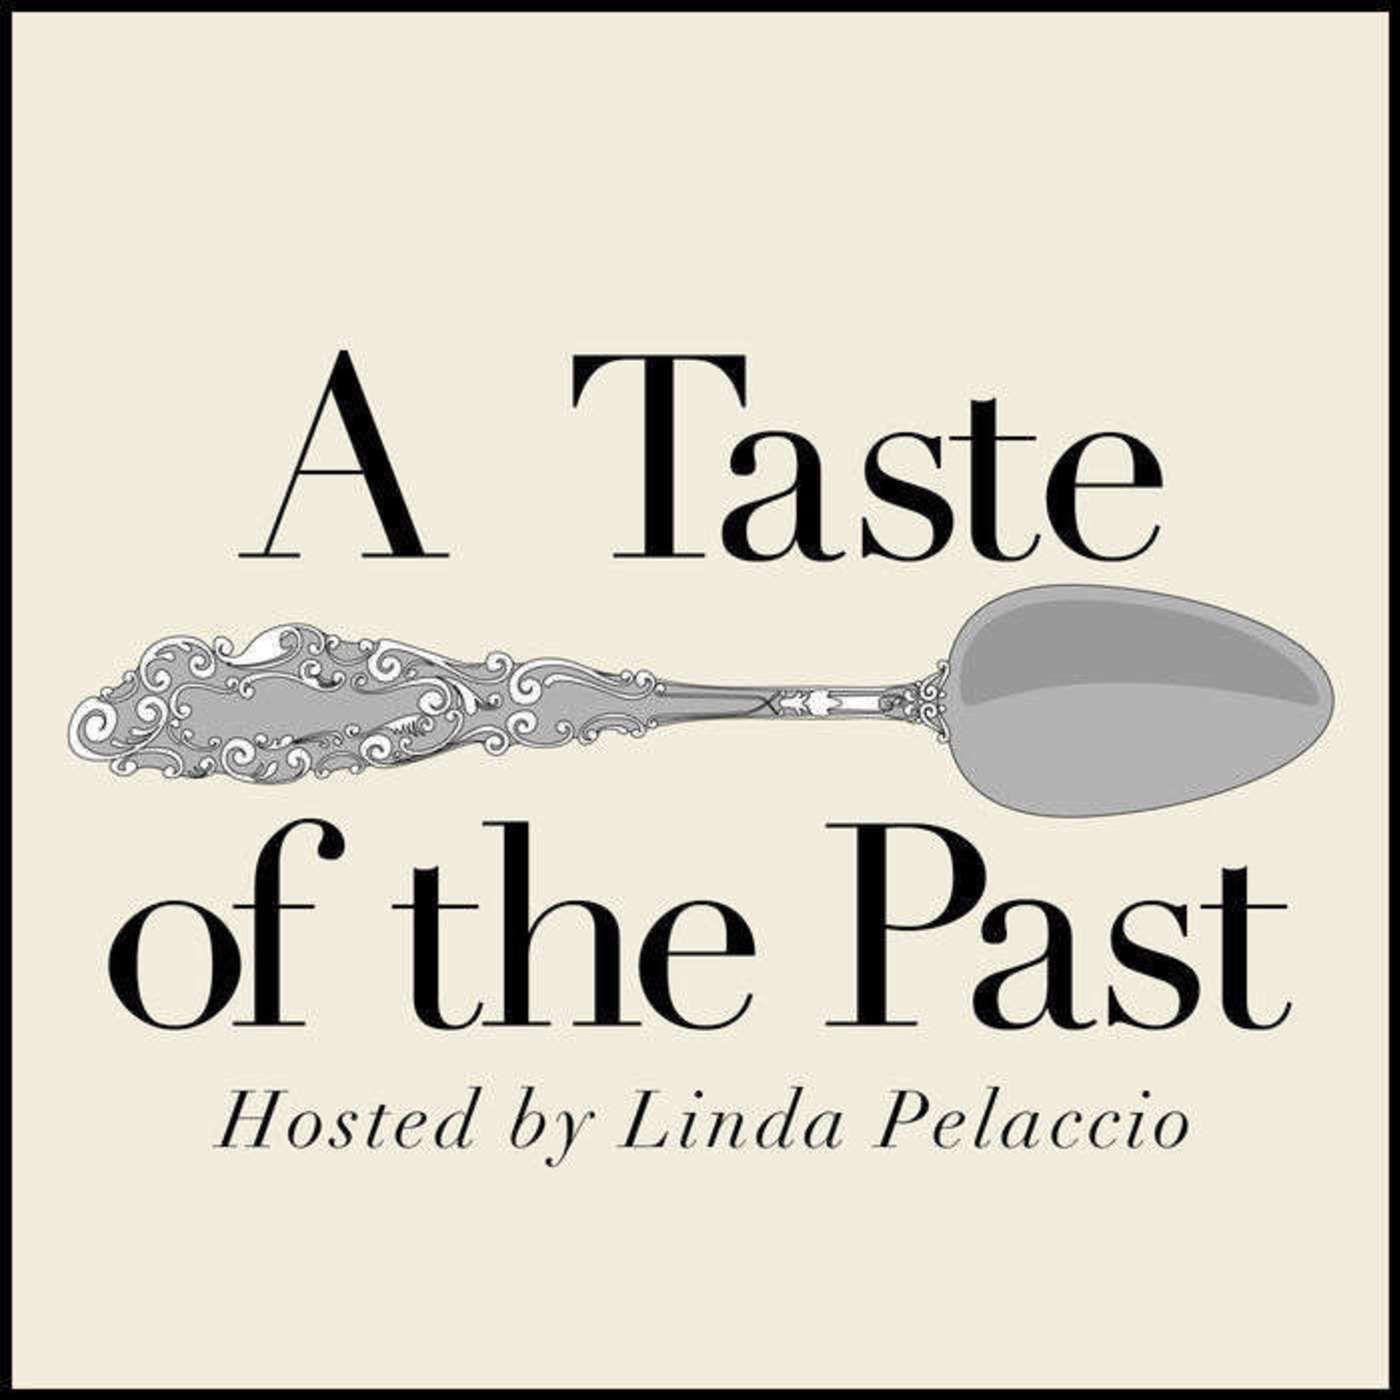 Episode 195: How the Other Half Ate: Working Class Meals of 1900